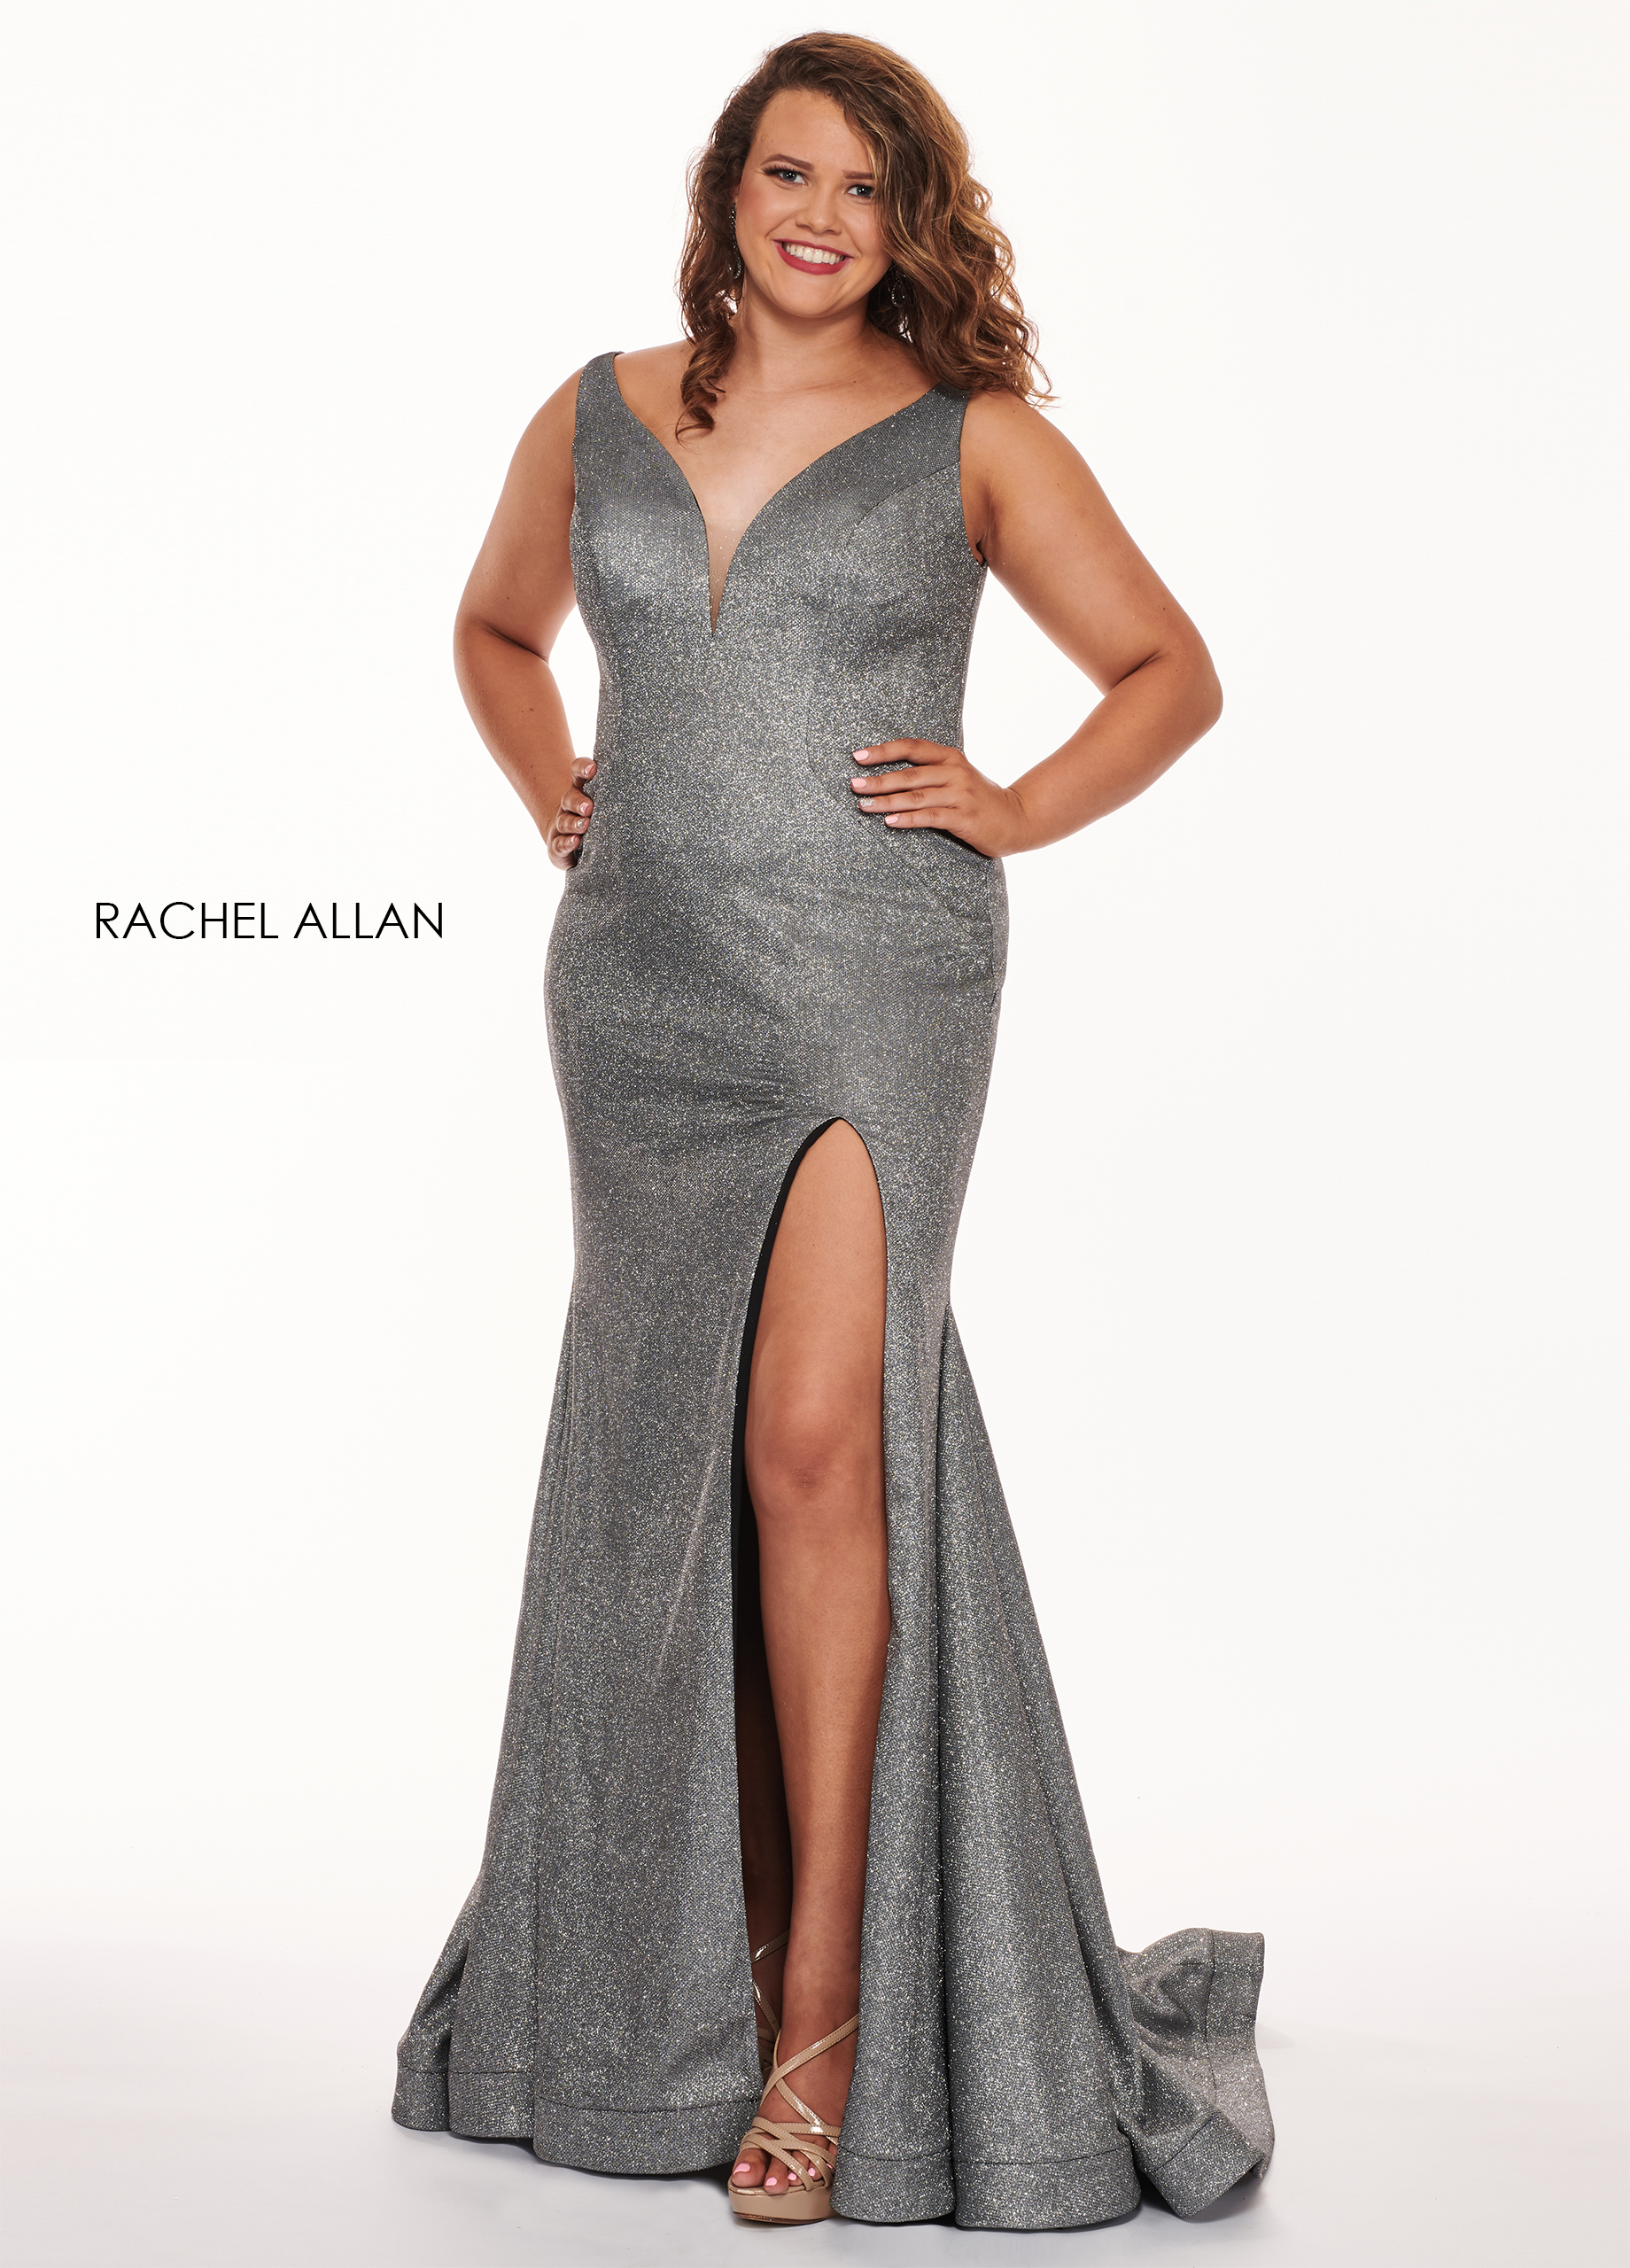 V-Neck Fit & Flare Plus Size Dresses in GUNMETAL Color